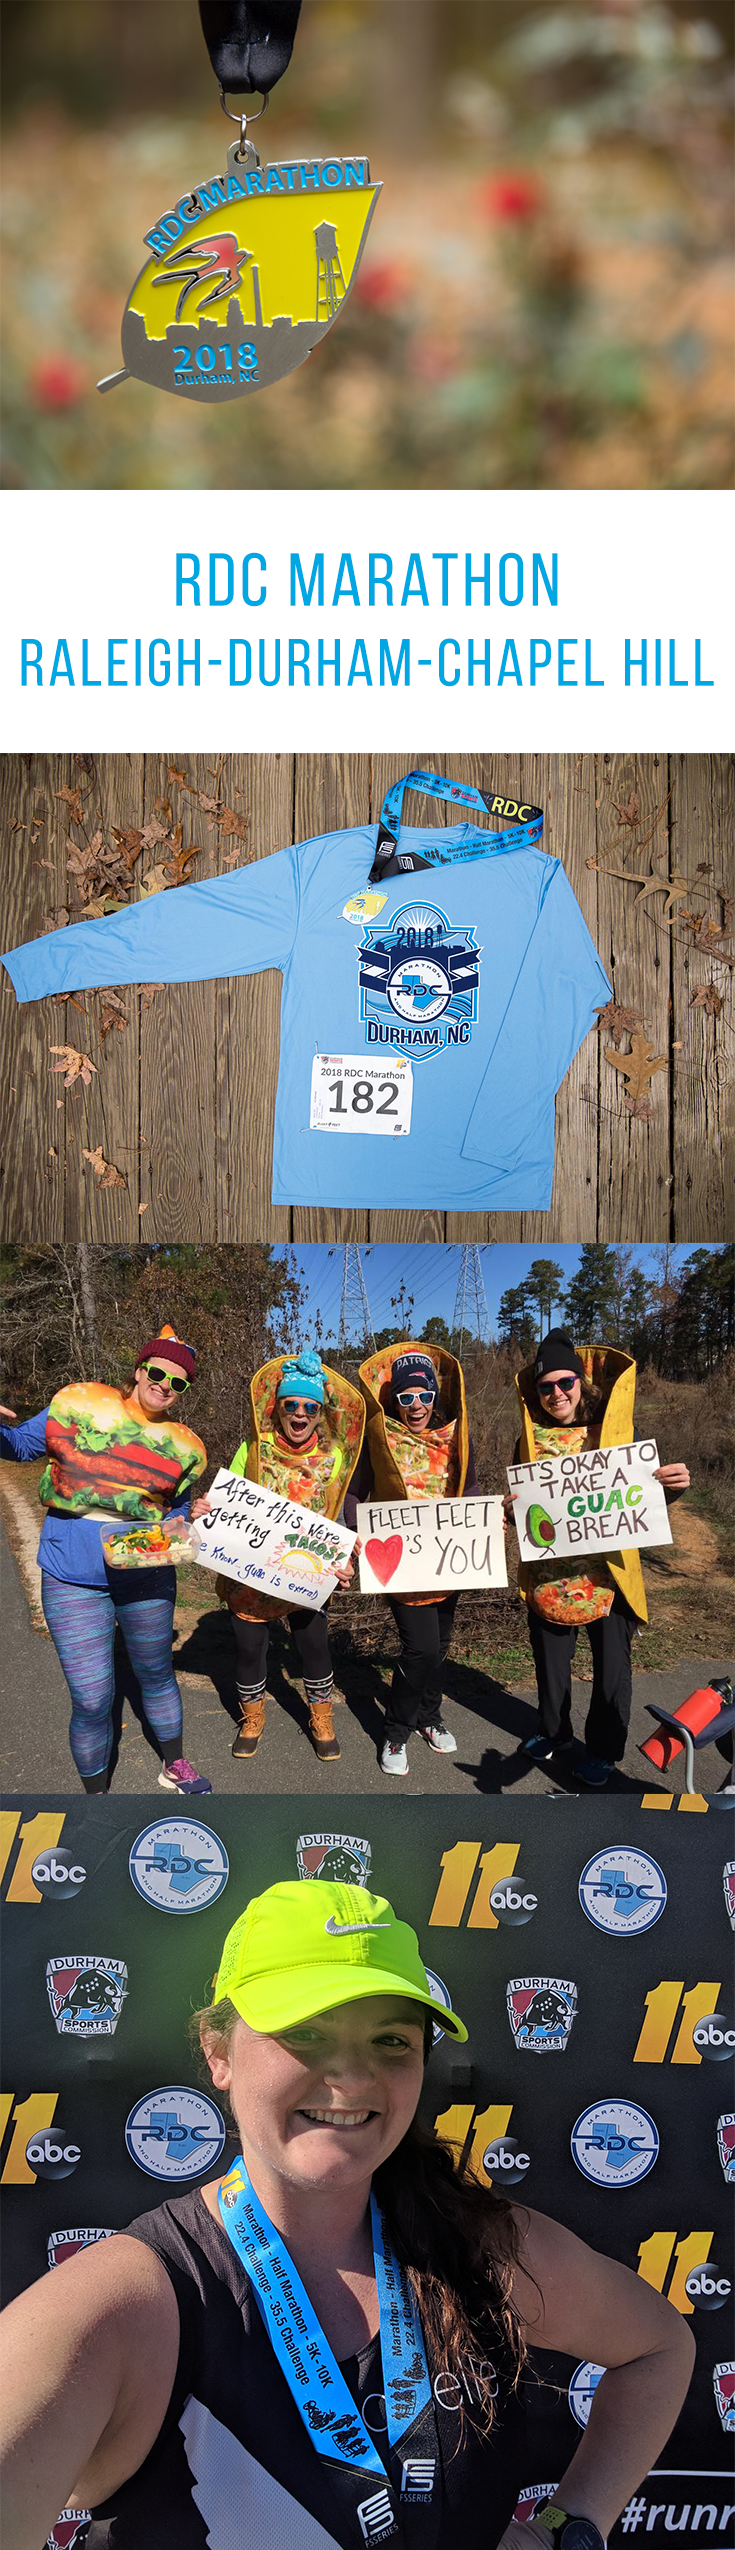 RDC Marathon: The RDC (Raleigh-Durham-Chapel Hill) Marathon is a fun local race on the beautiful American Tobacco Trail greenway with great local support and fast times!